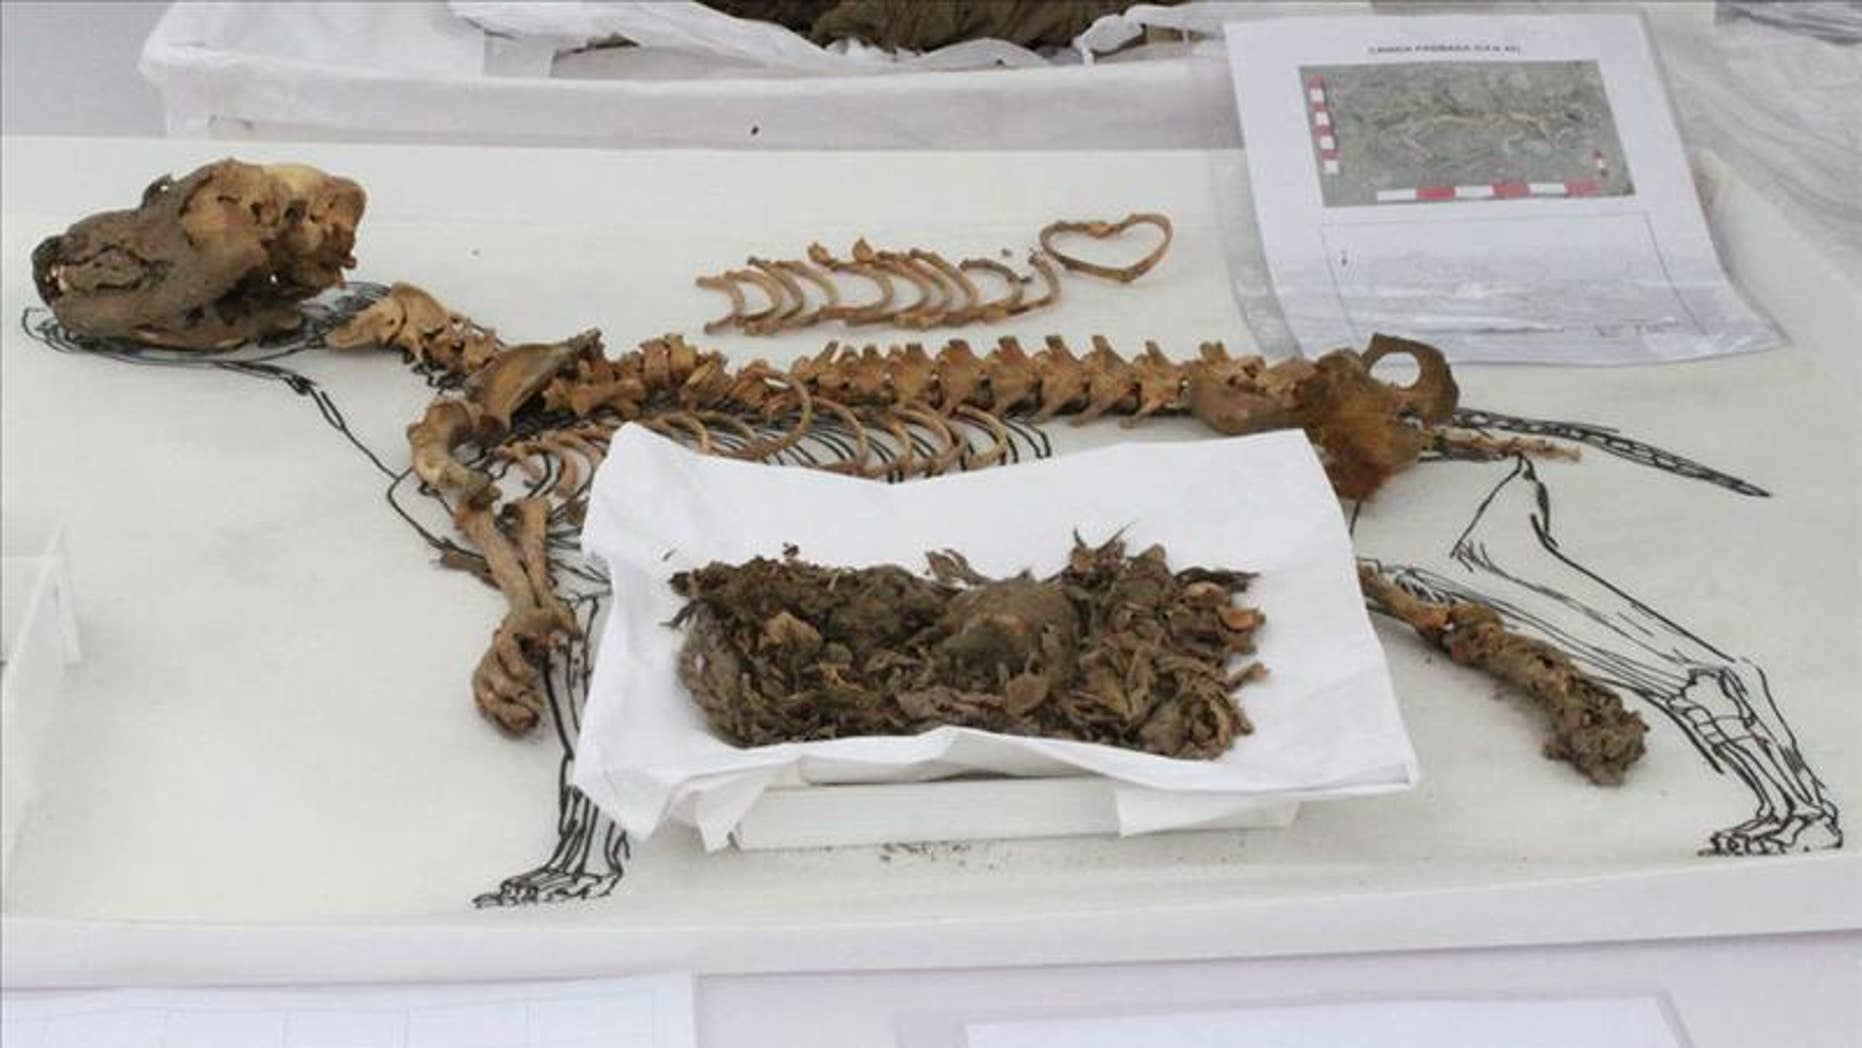 One of the 137 dogs, thought to be more than 900 years old, found in an archaeological complex in Lima, Peru.